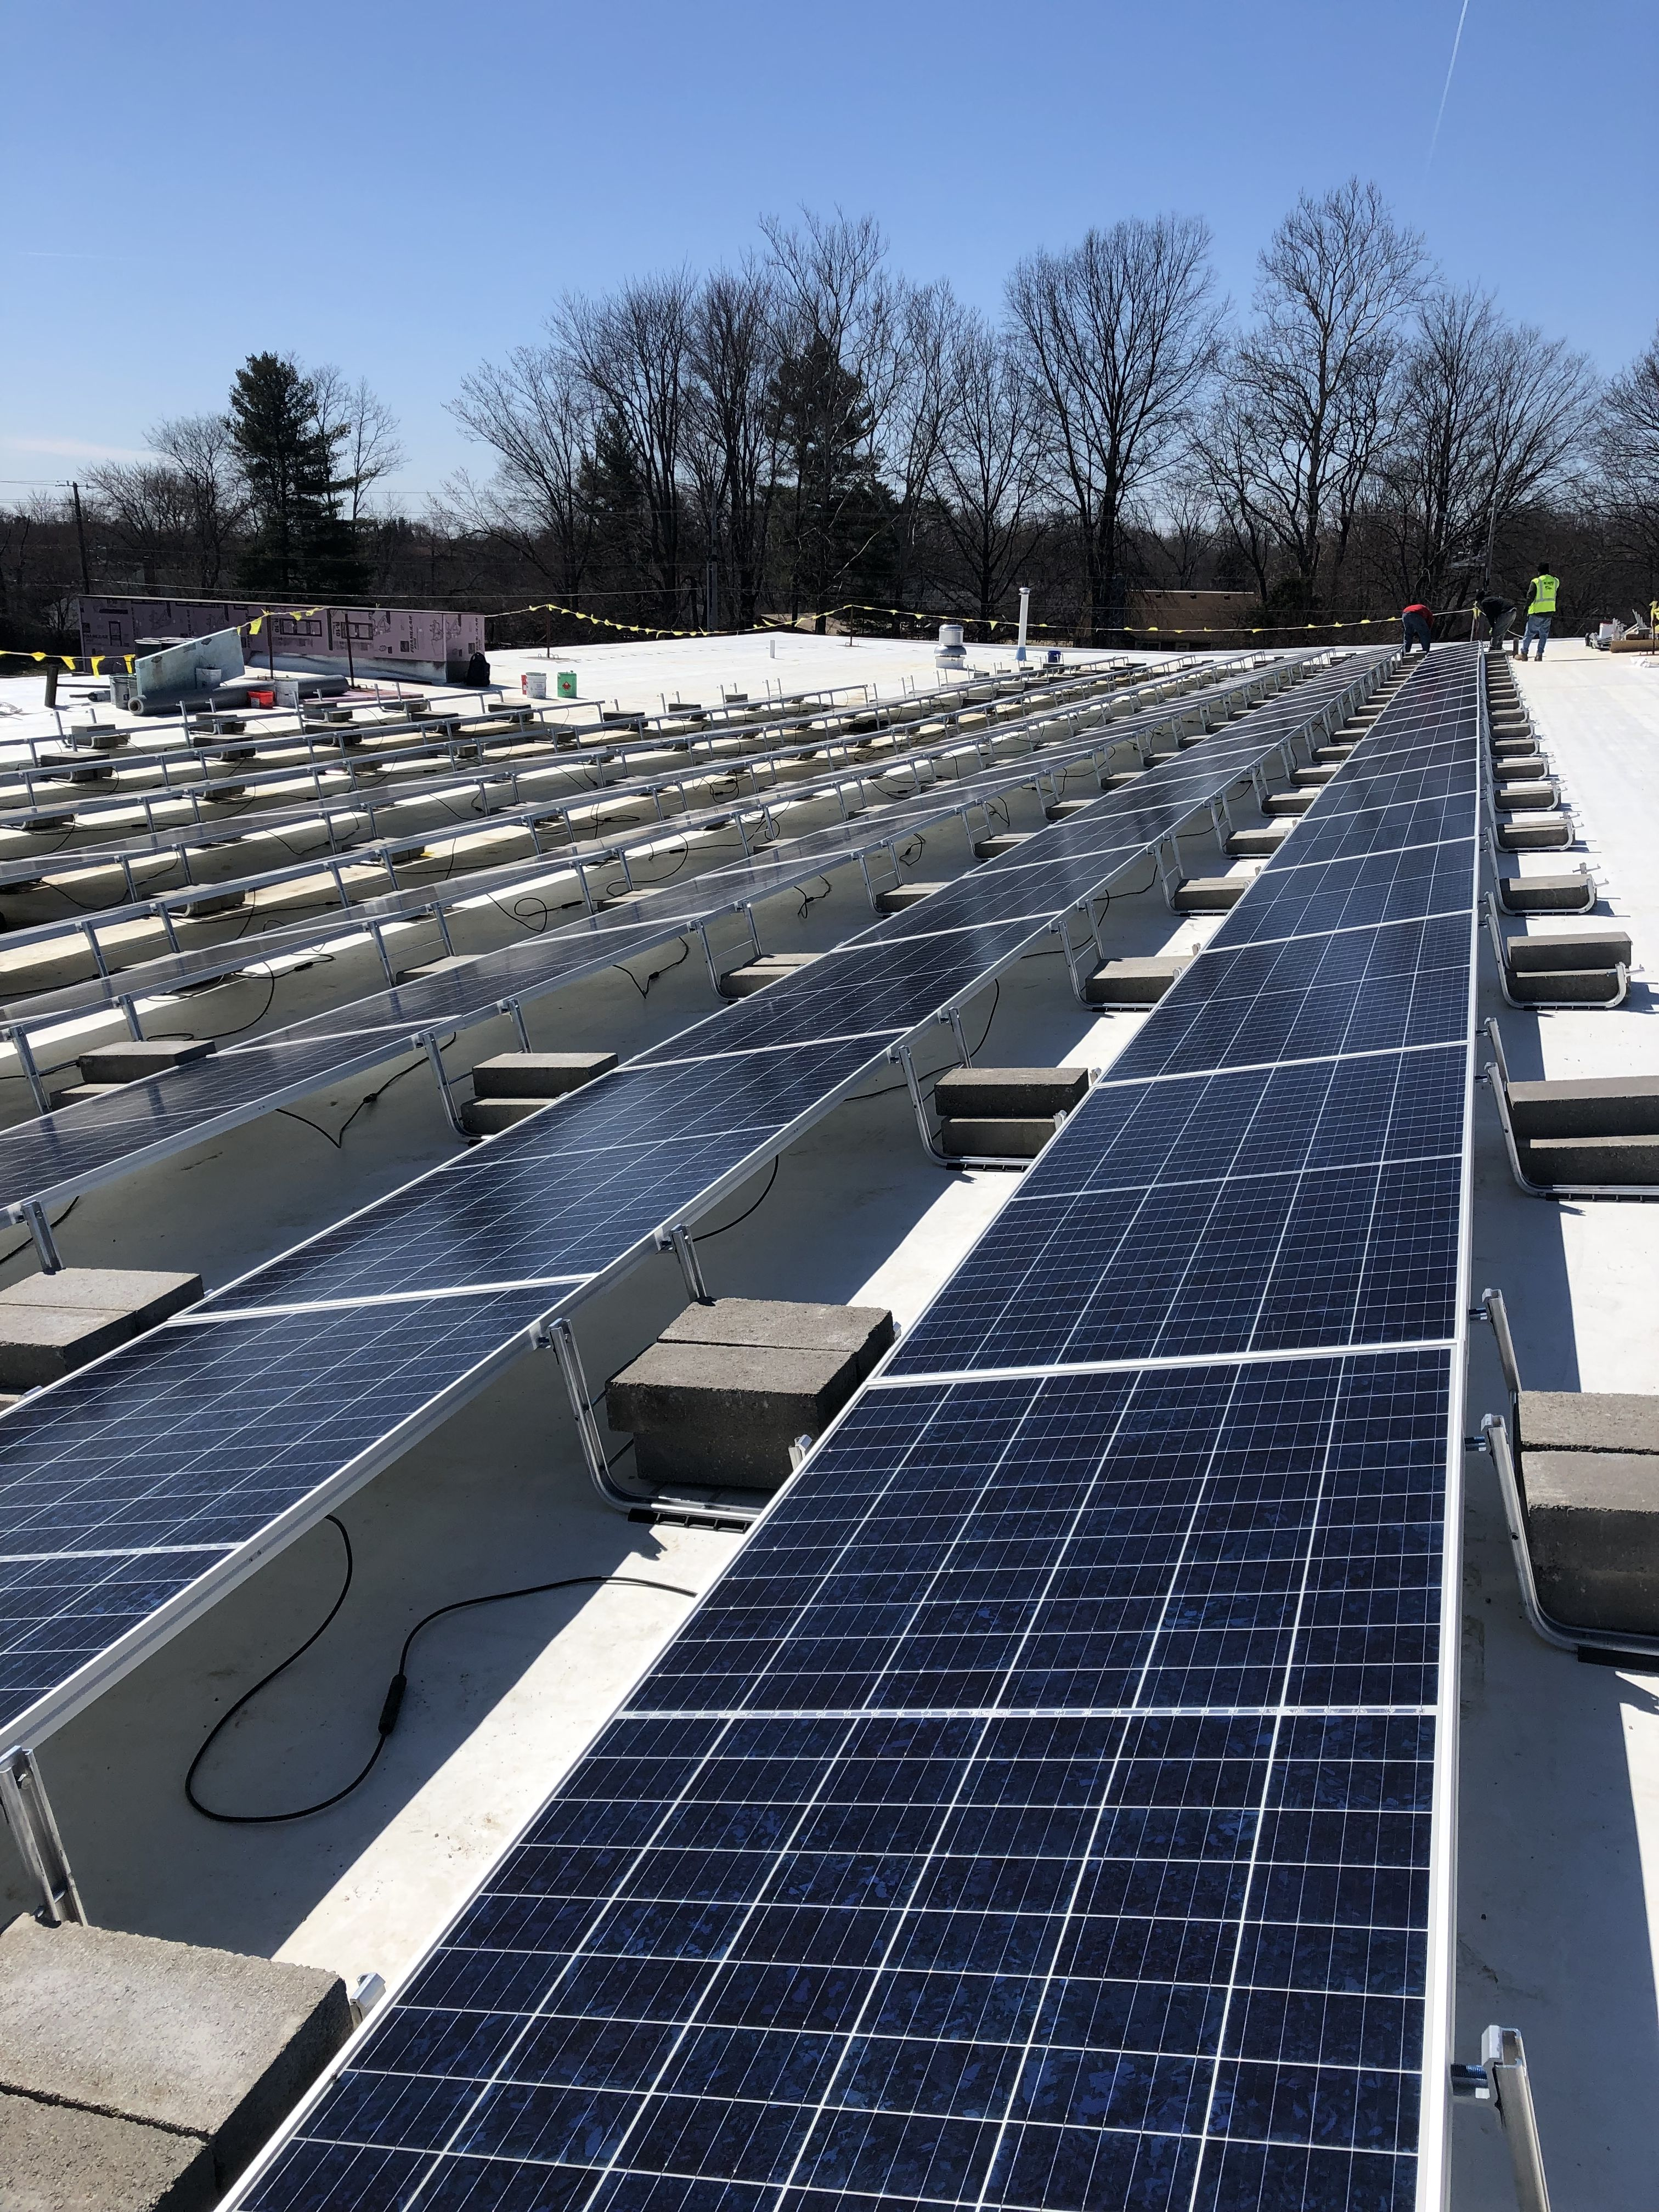 Image By Twm Electrician The Working Ma On Clean Energy Solar Energy Renewable Energy Roof Solar Panel Solar Panels Solar